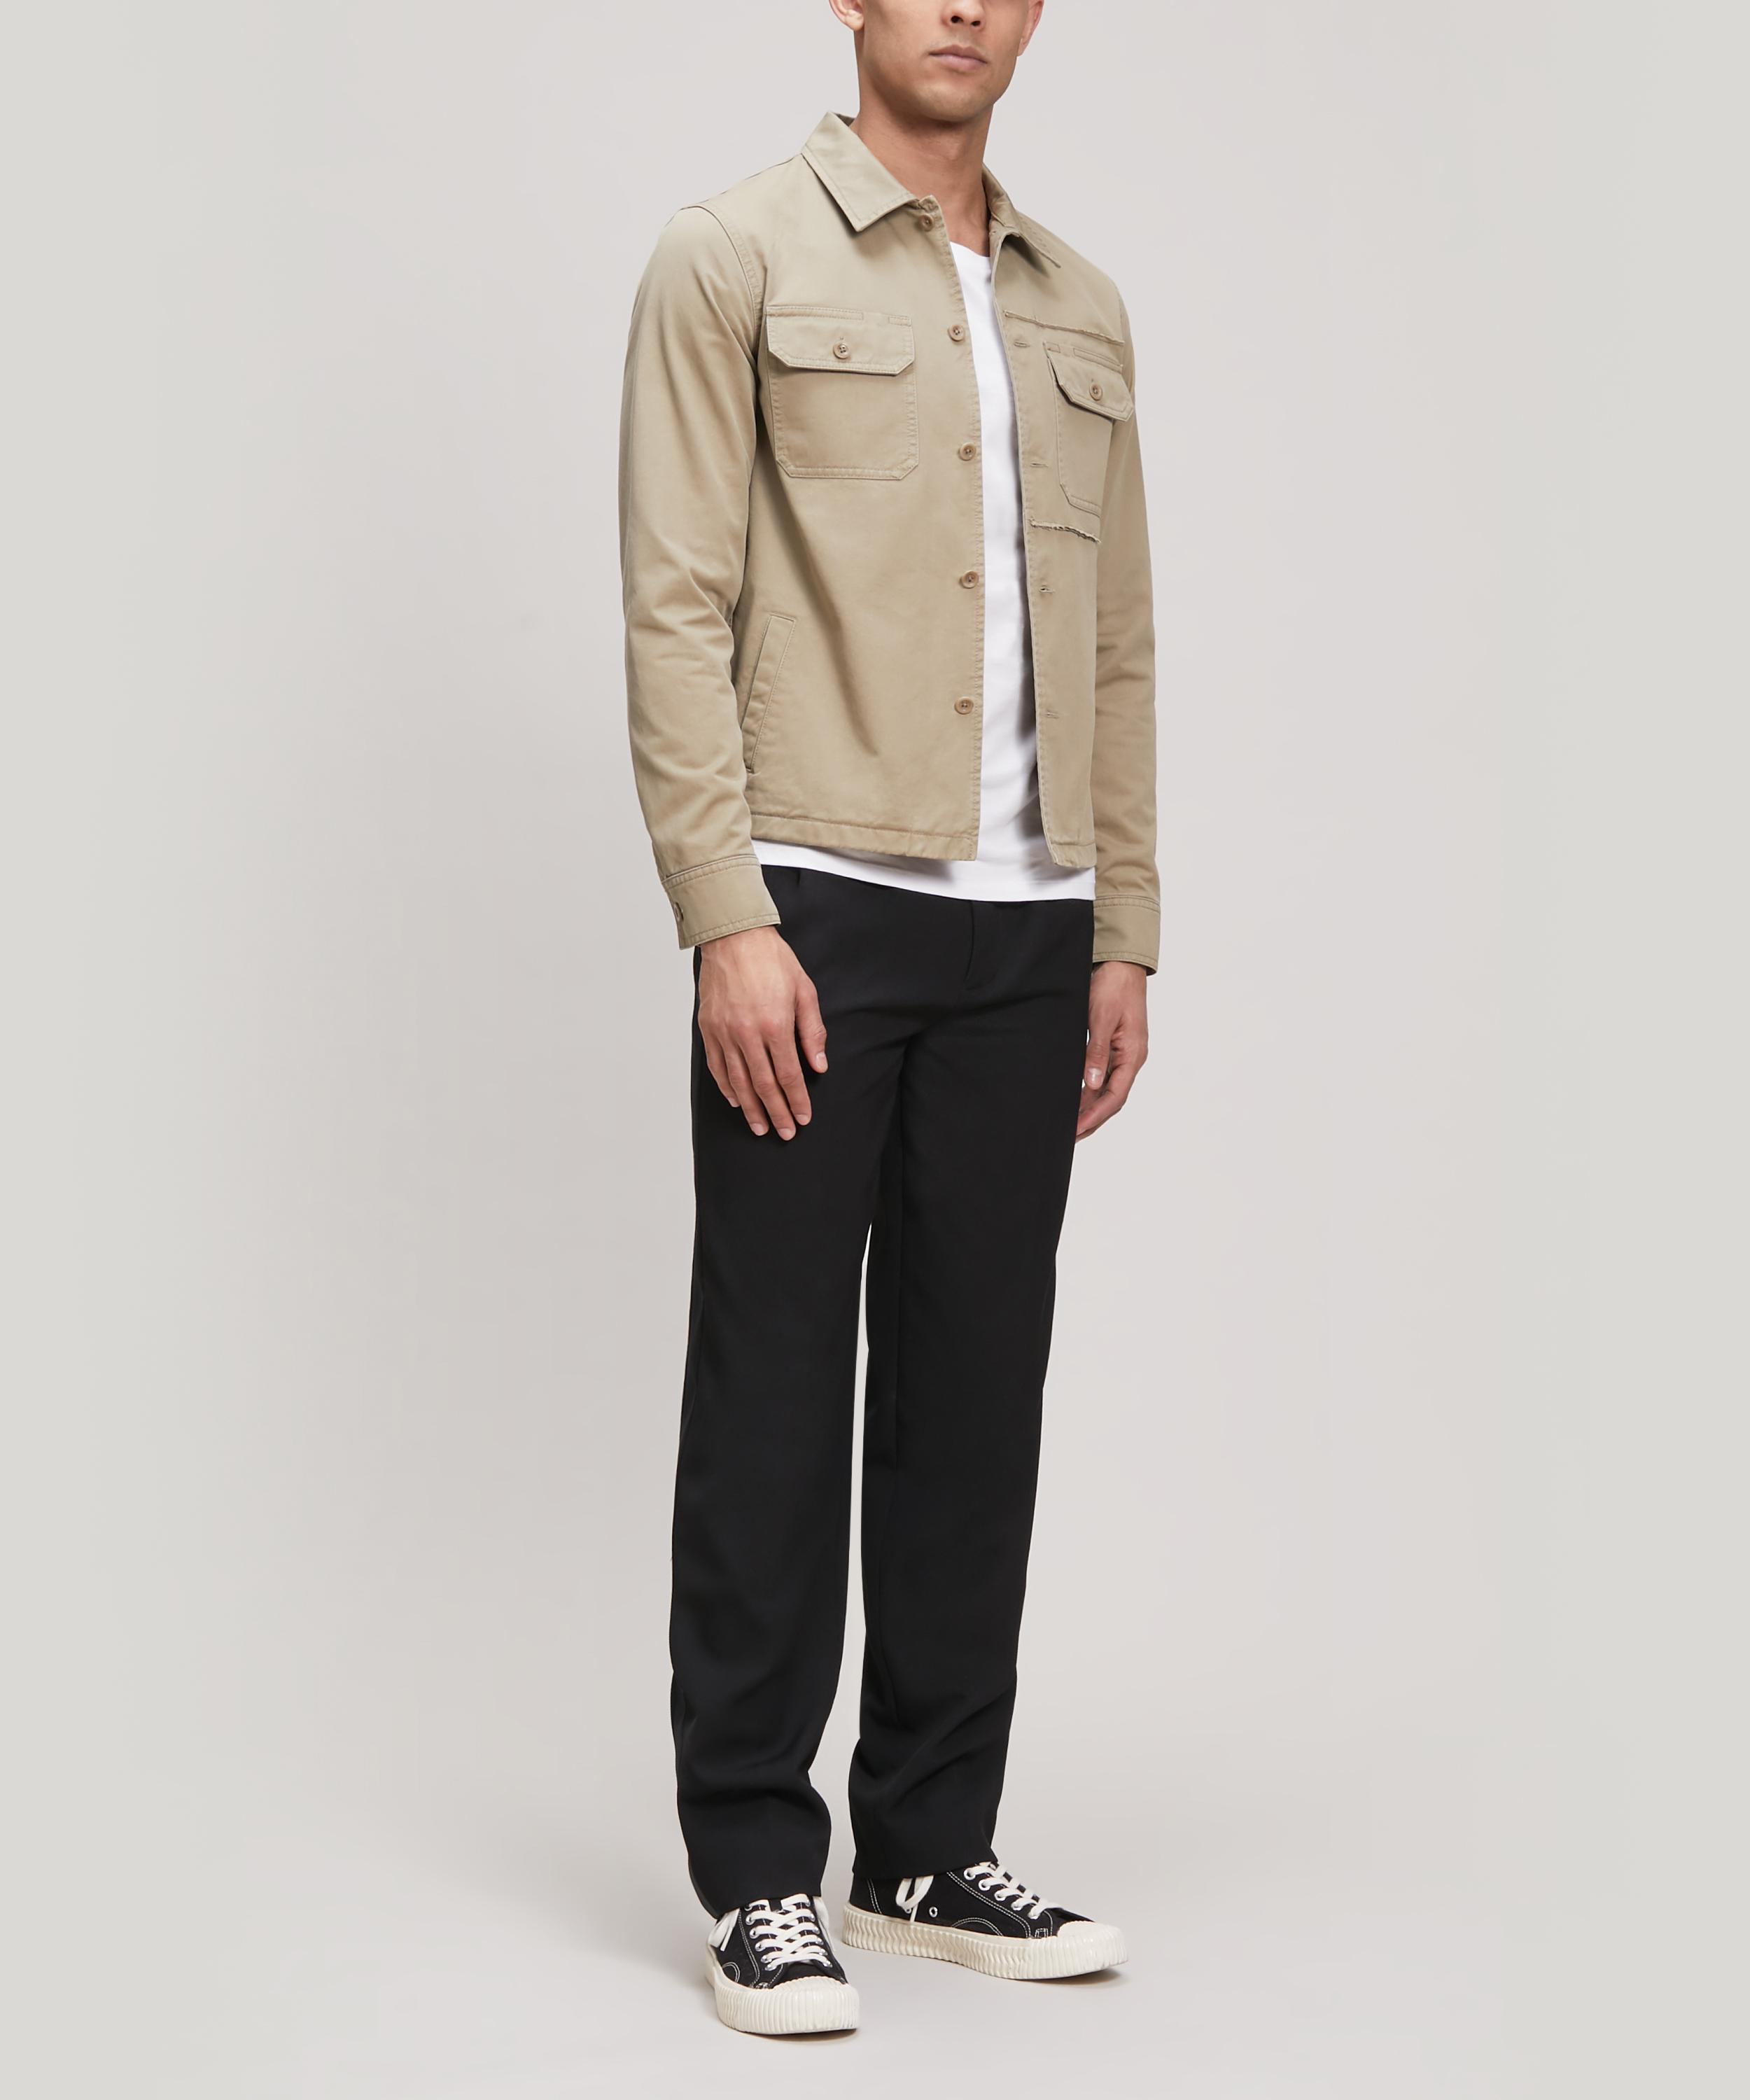 8bb69a252a5 Lyst - Maison Margiela Distressed Cotton-twill Overshirt in Natural for Men